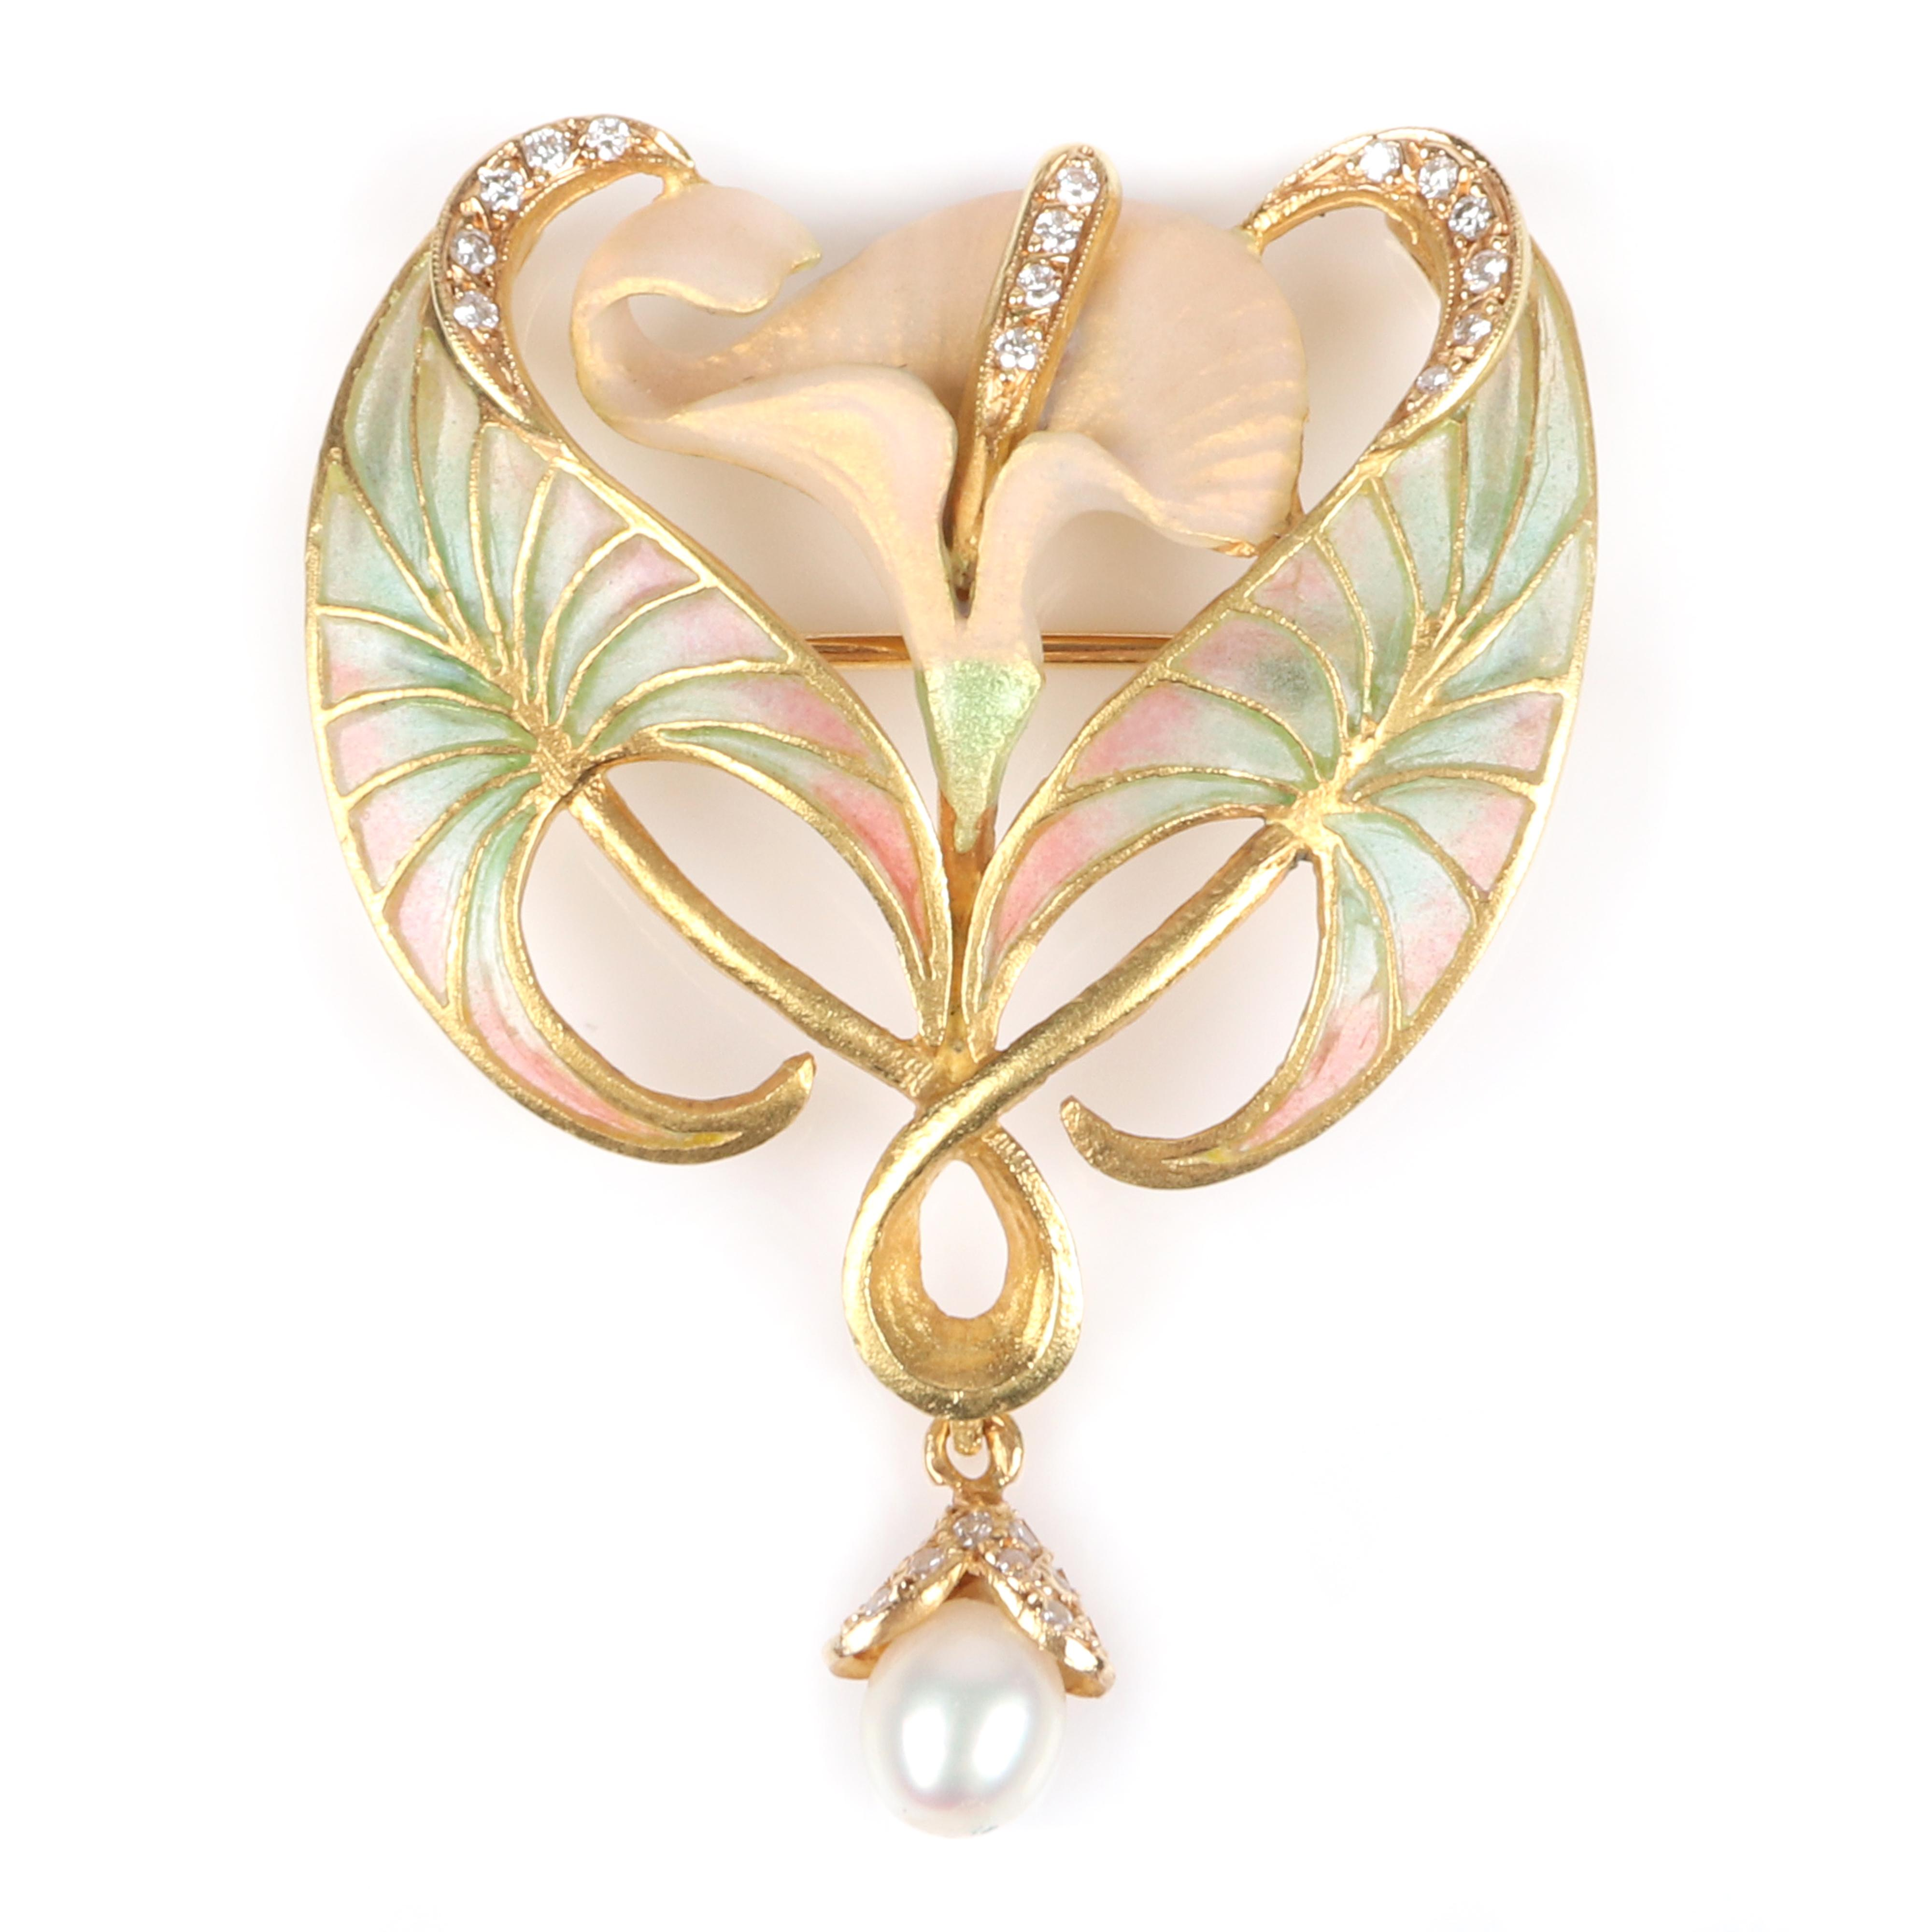 "Masriera 18K yellow gold and diamond plique-a-jour Art Nouveau style lily flower pin pendant with drop pearl. 2"" x 1 1/4"" 5.45 dwt"